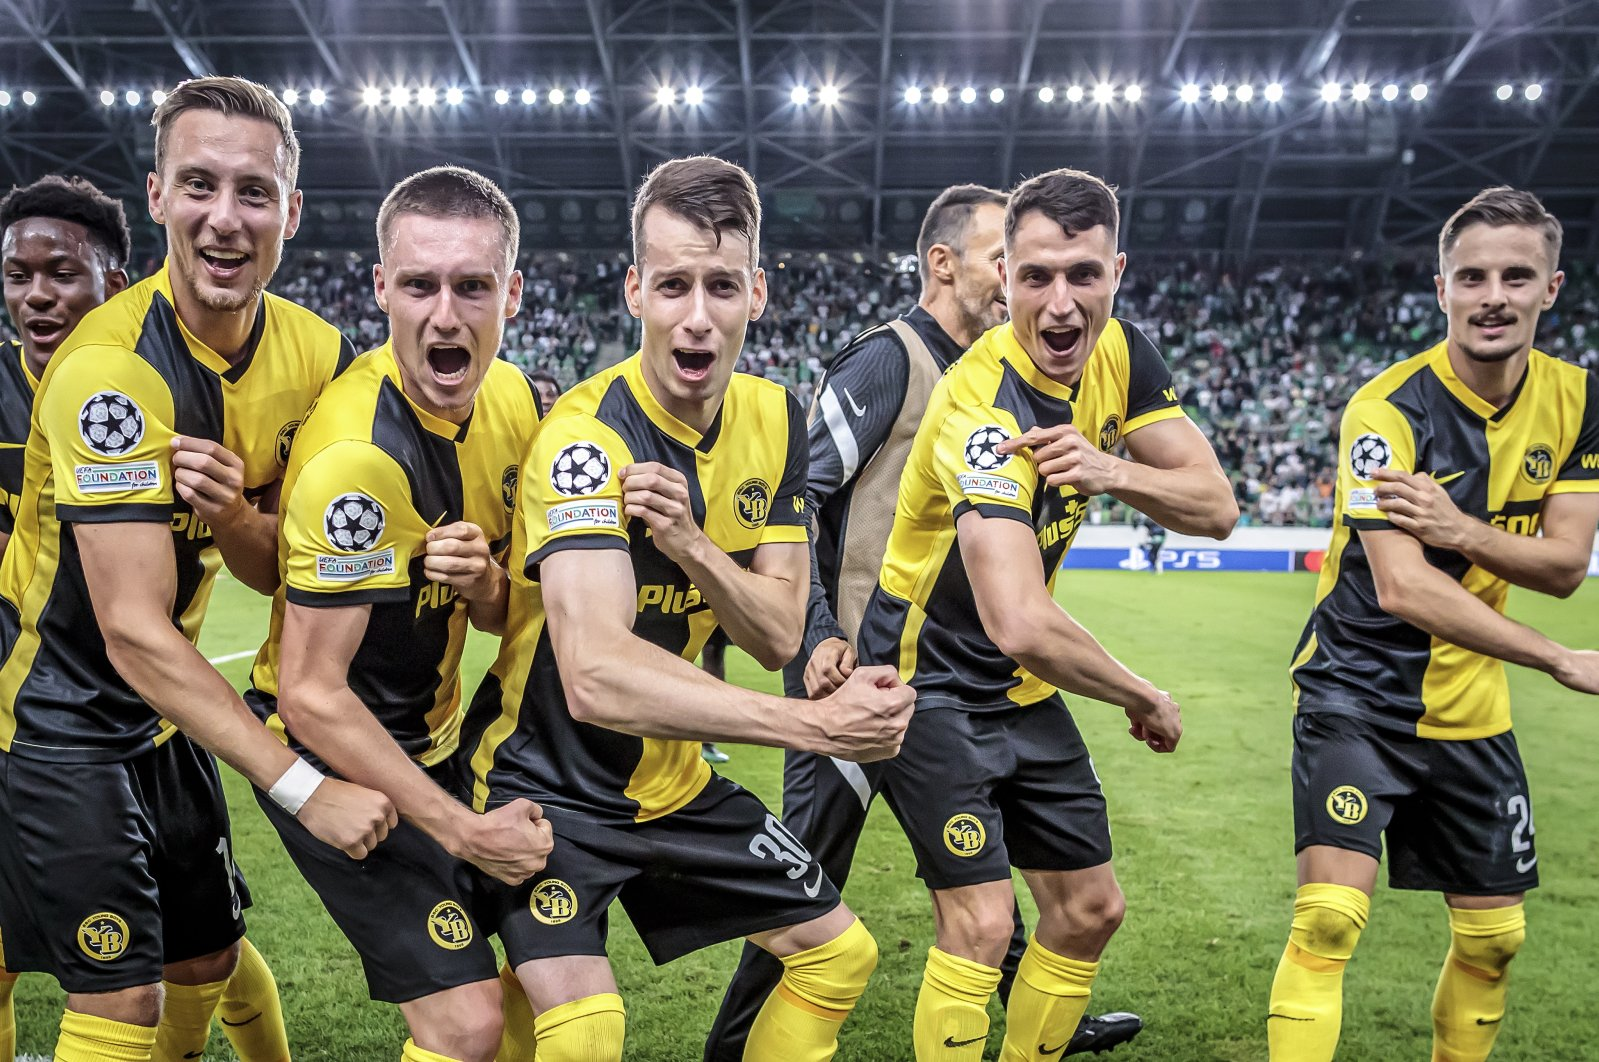 Young Boys' players celebrate their victory in the UEFA Champions League Playoff against Switzerland's Ferencvaros at the Groupama Arena stadium in Budapest, Hungary, Aug. 24, 2021. (EPA Photo)